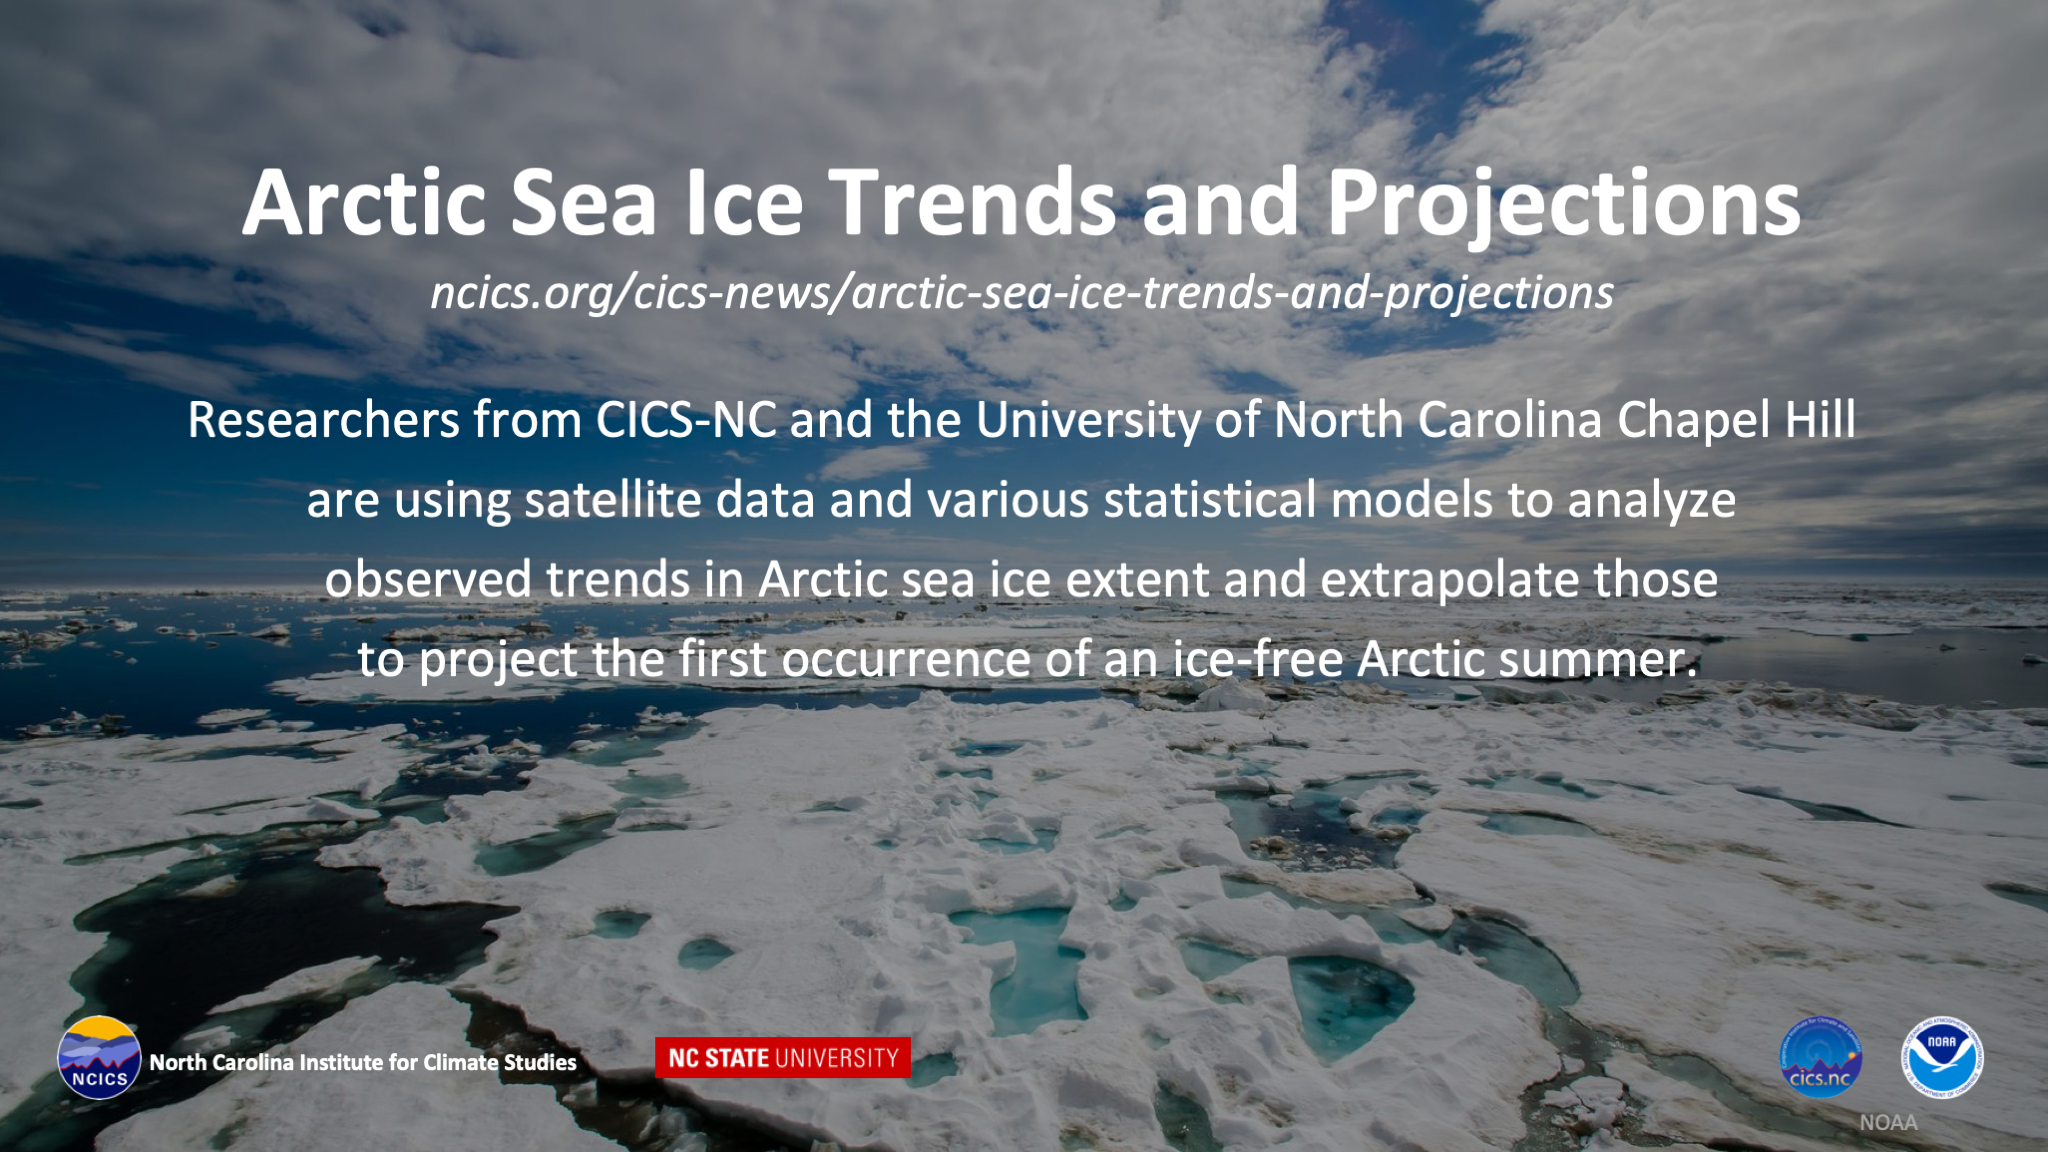 Artic Sea Ice Trends and Projections